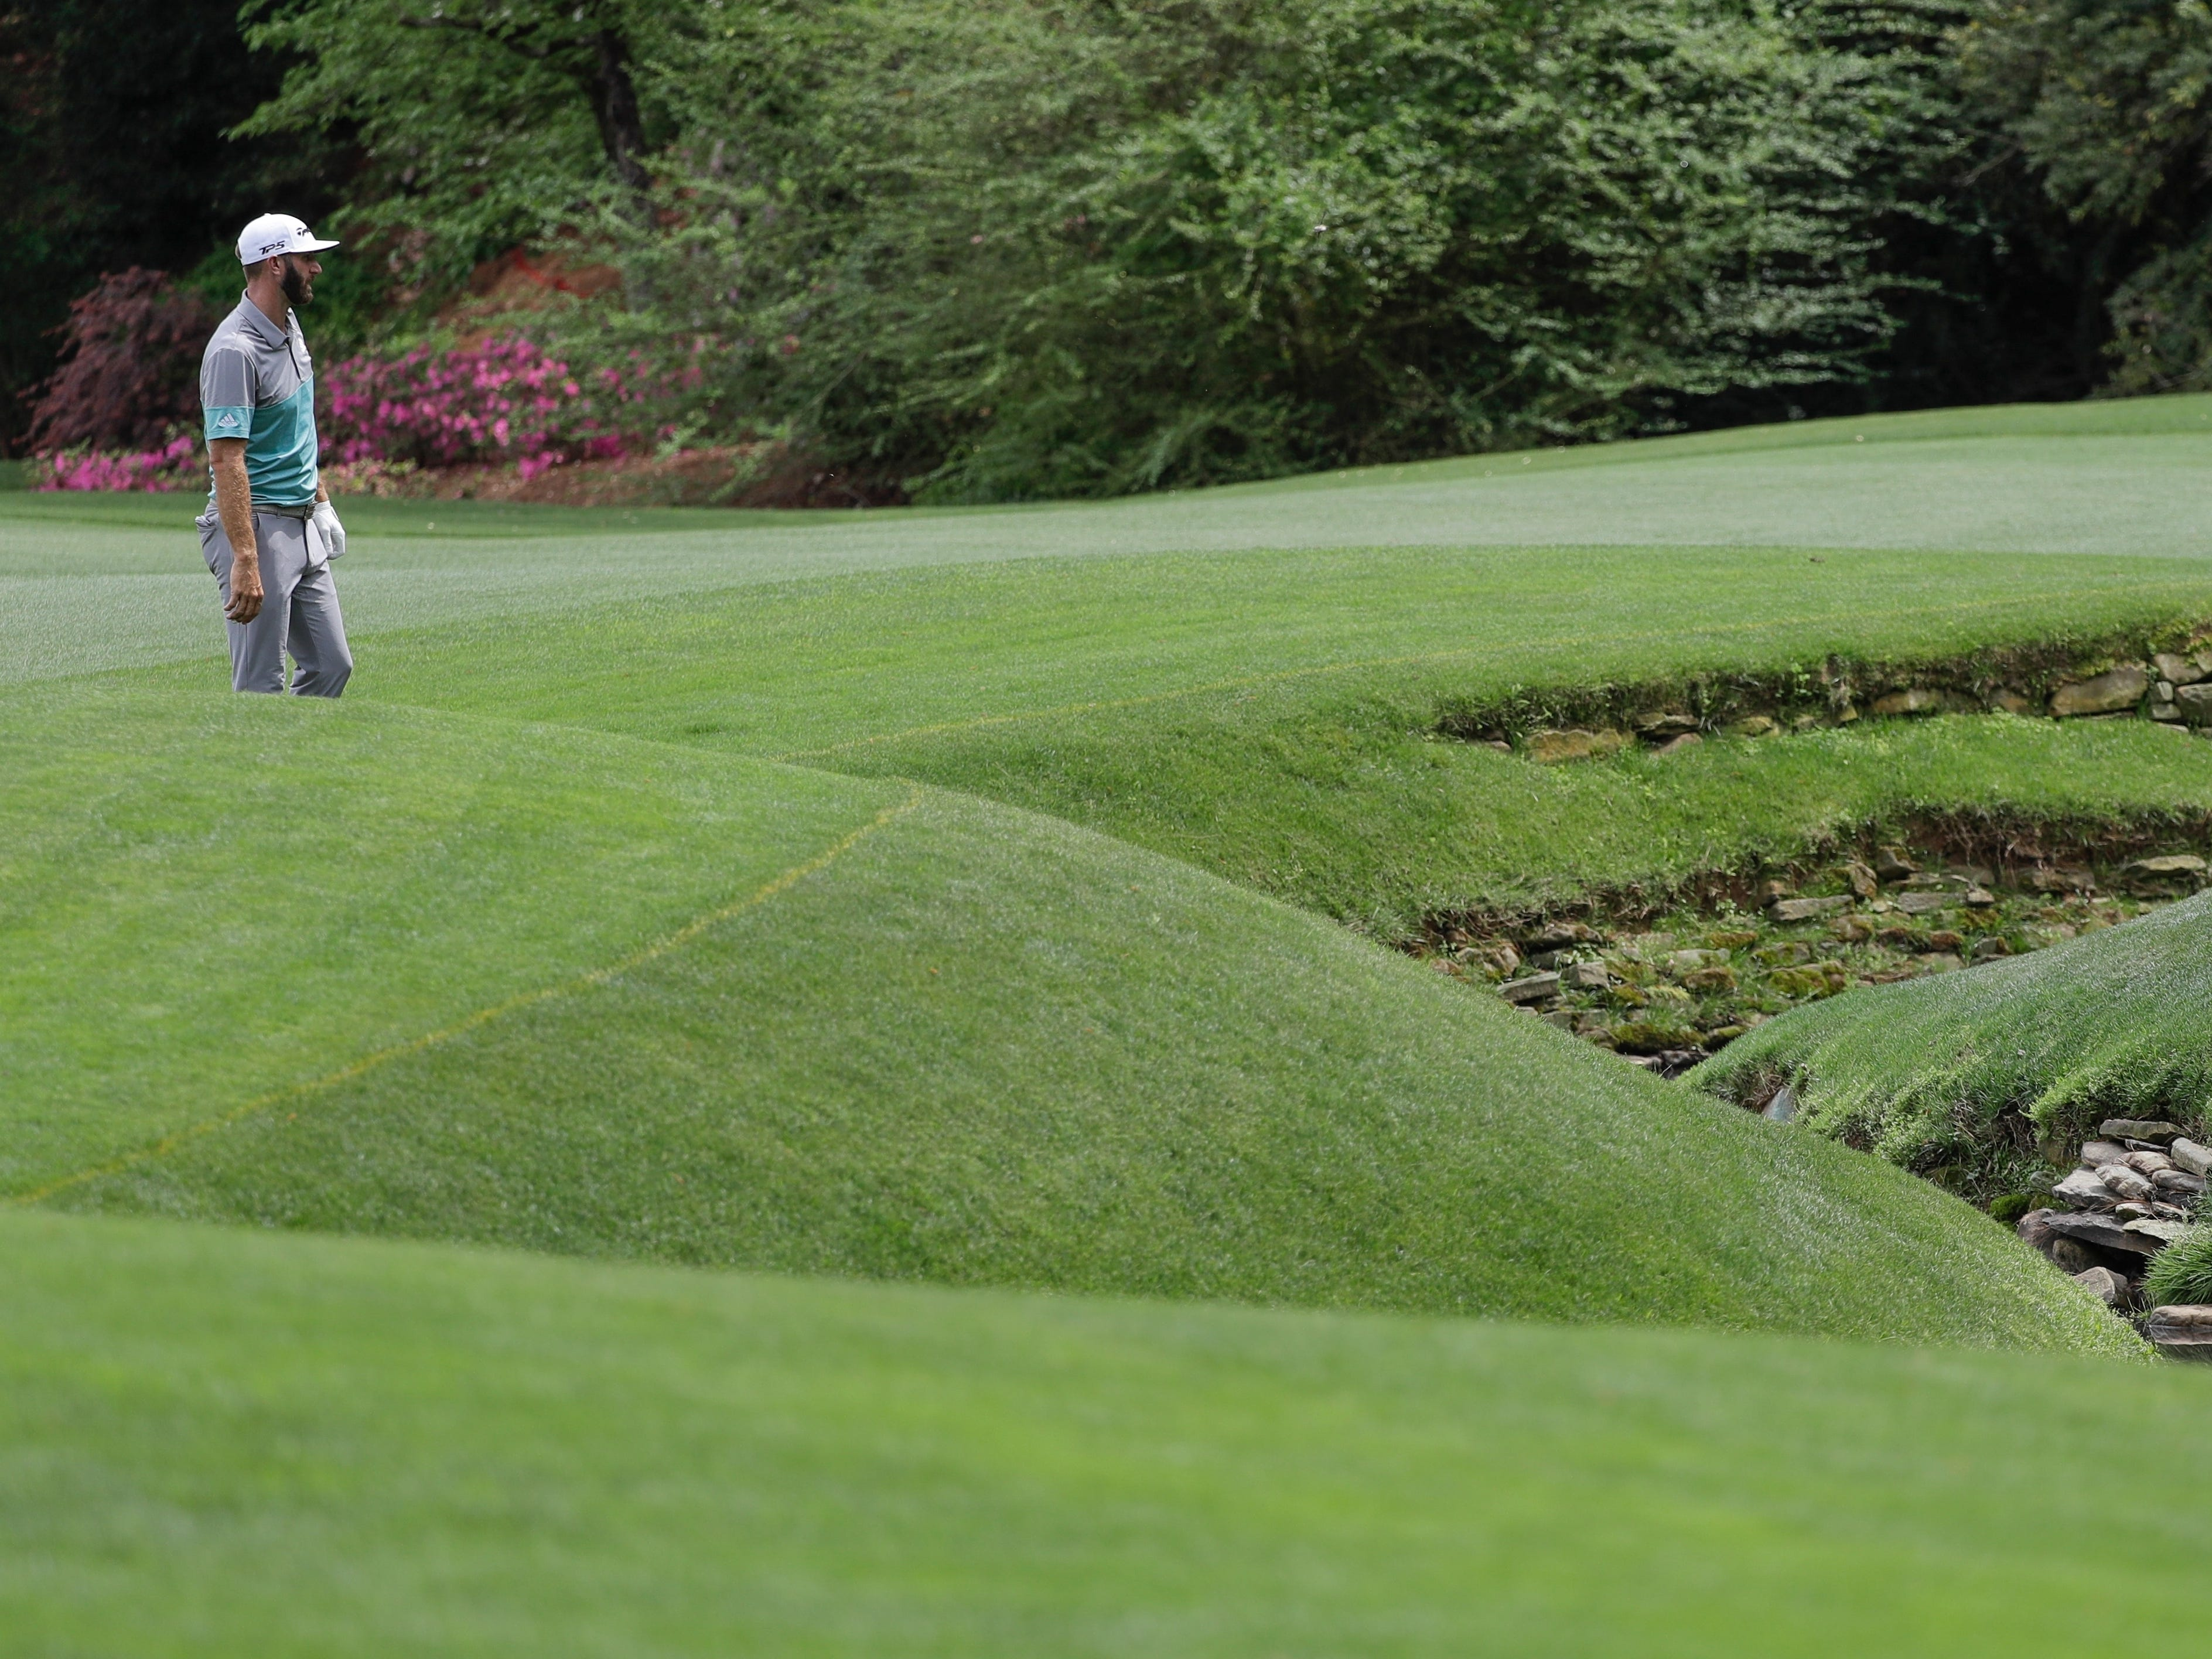 Dustin Johnson looks over Rae's creek at the 13th green during the second round for the Masters golf tournament Friday, April 12, 2019, in Augusta, Ga.